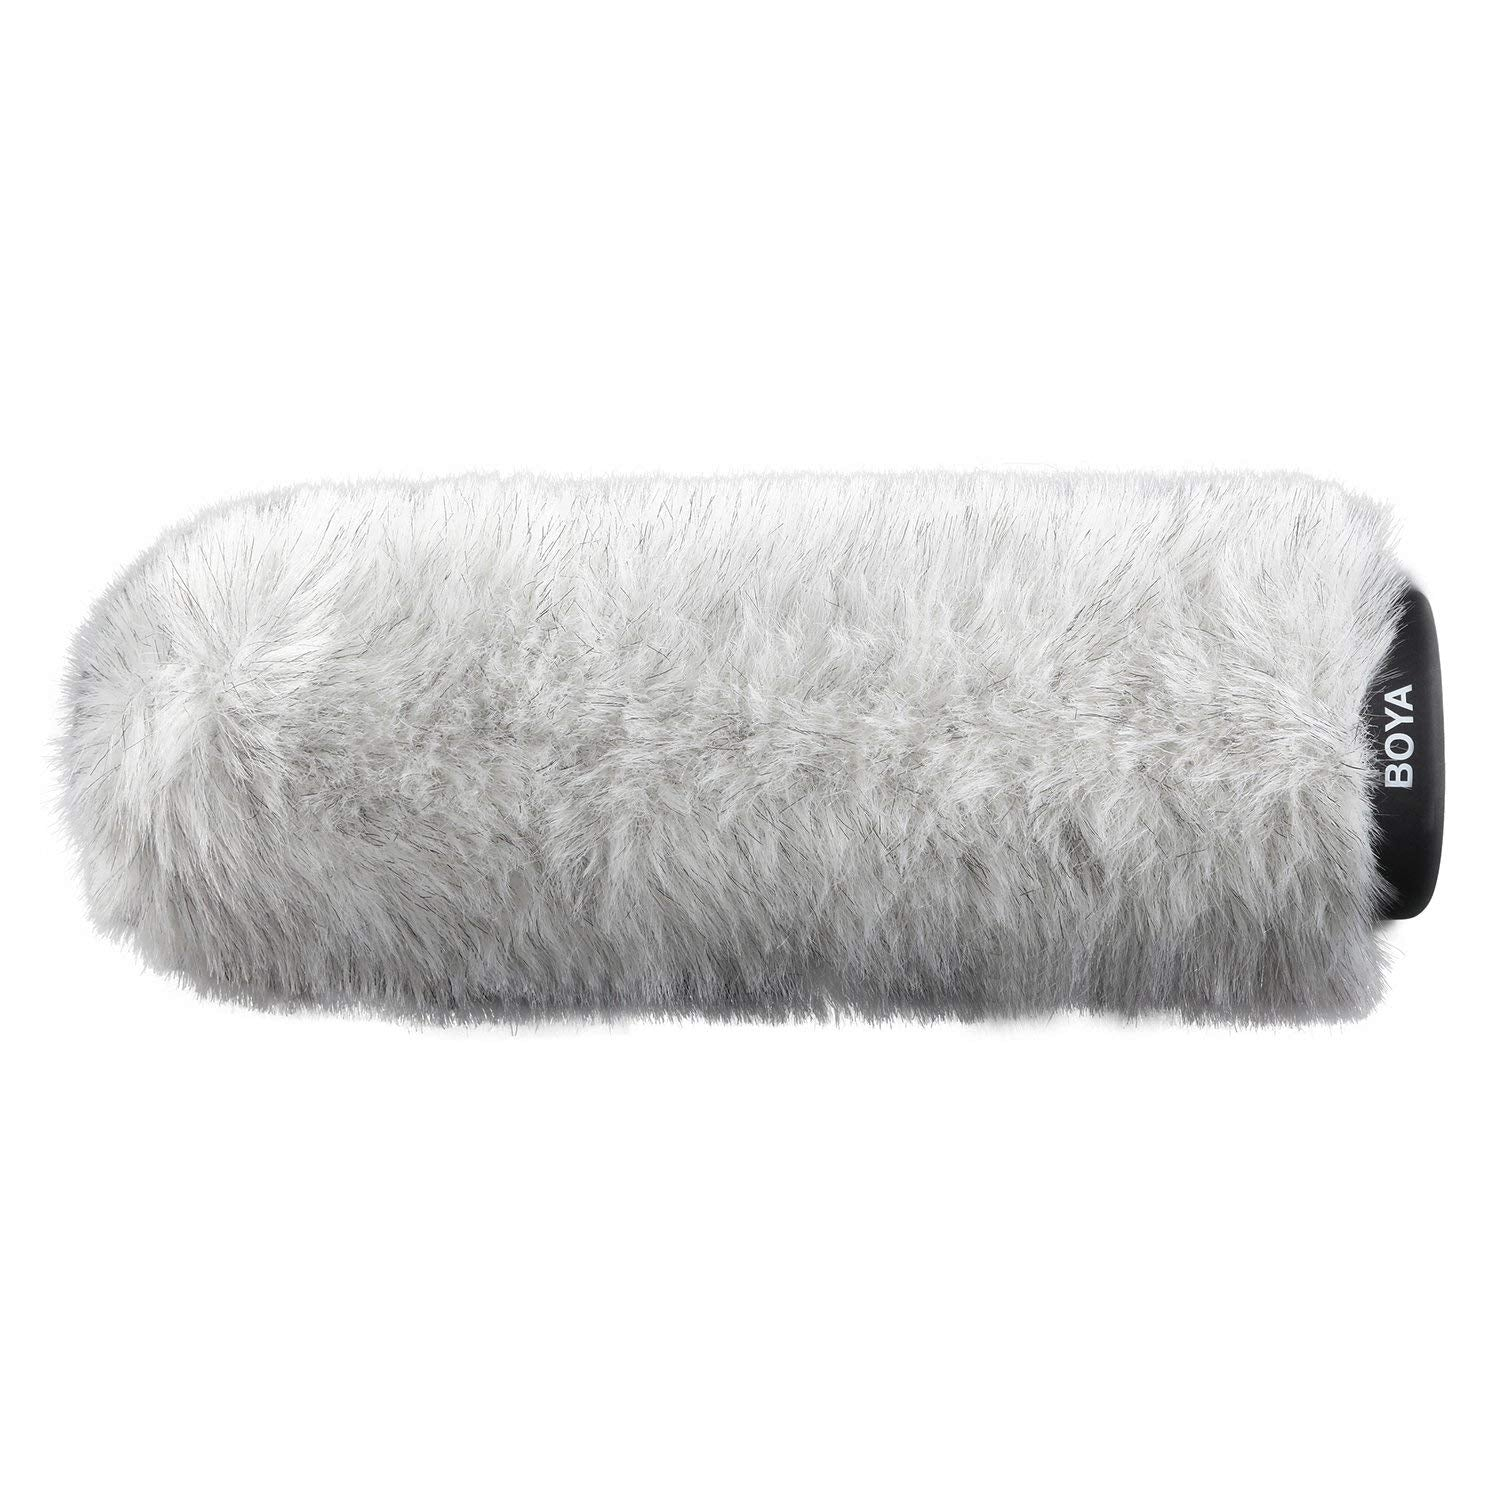 BOYA BY-P290 Furry Outdoor Interview Windshield Muff for Shotgun Capacitor Microphones (Inside Depth 11.6)